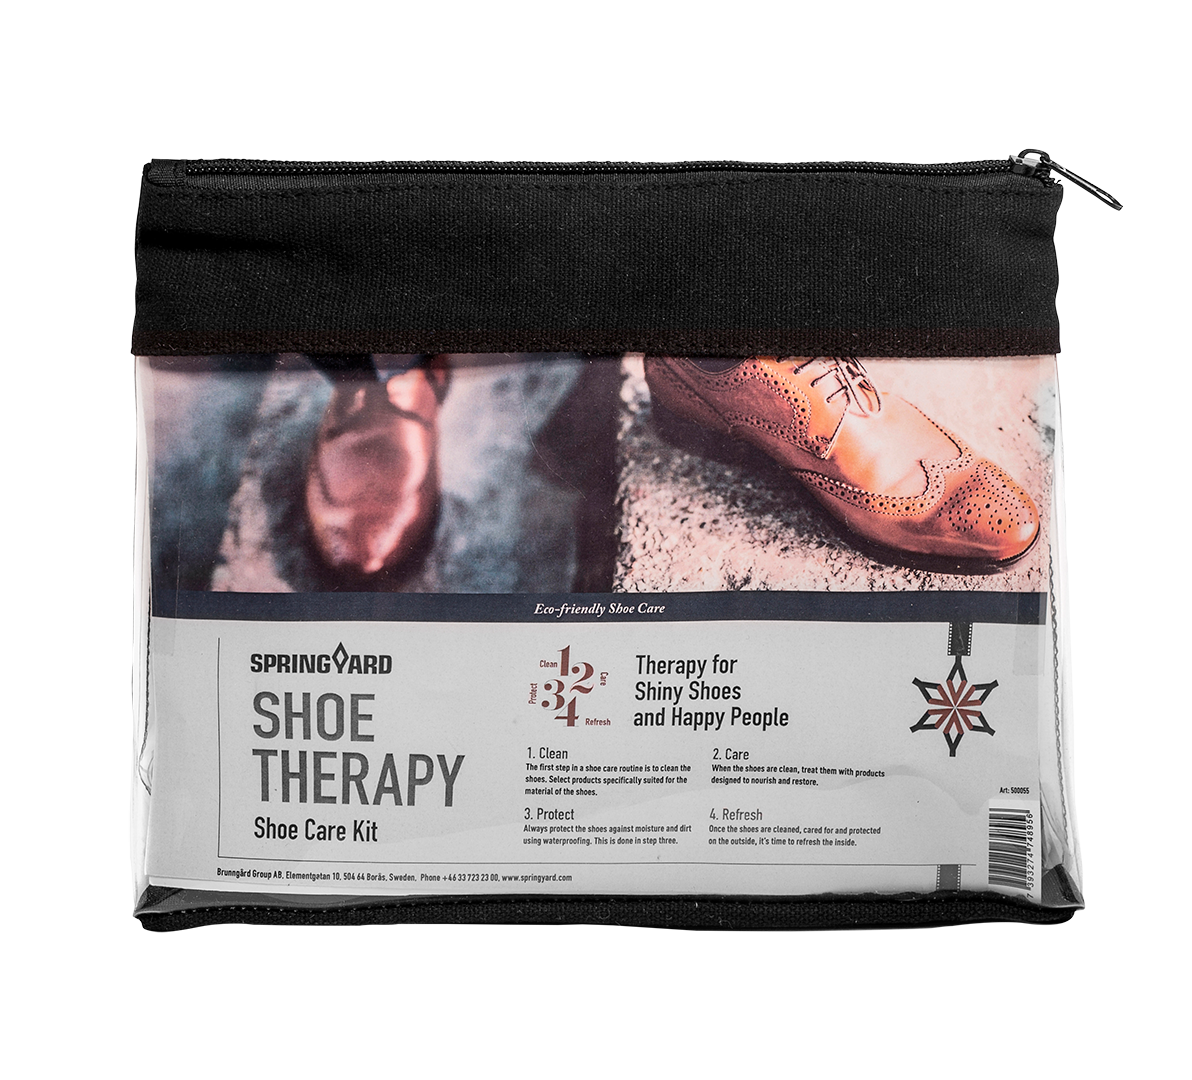 Shoe Care Kit Therapy